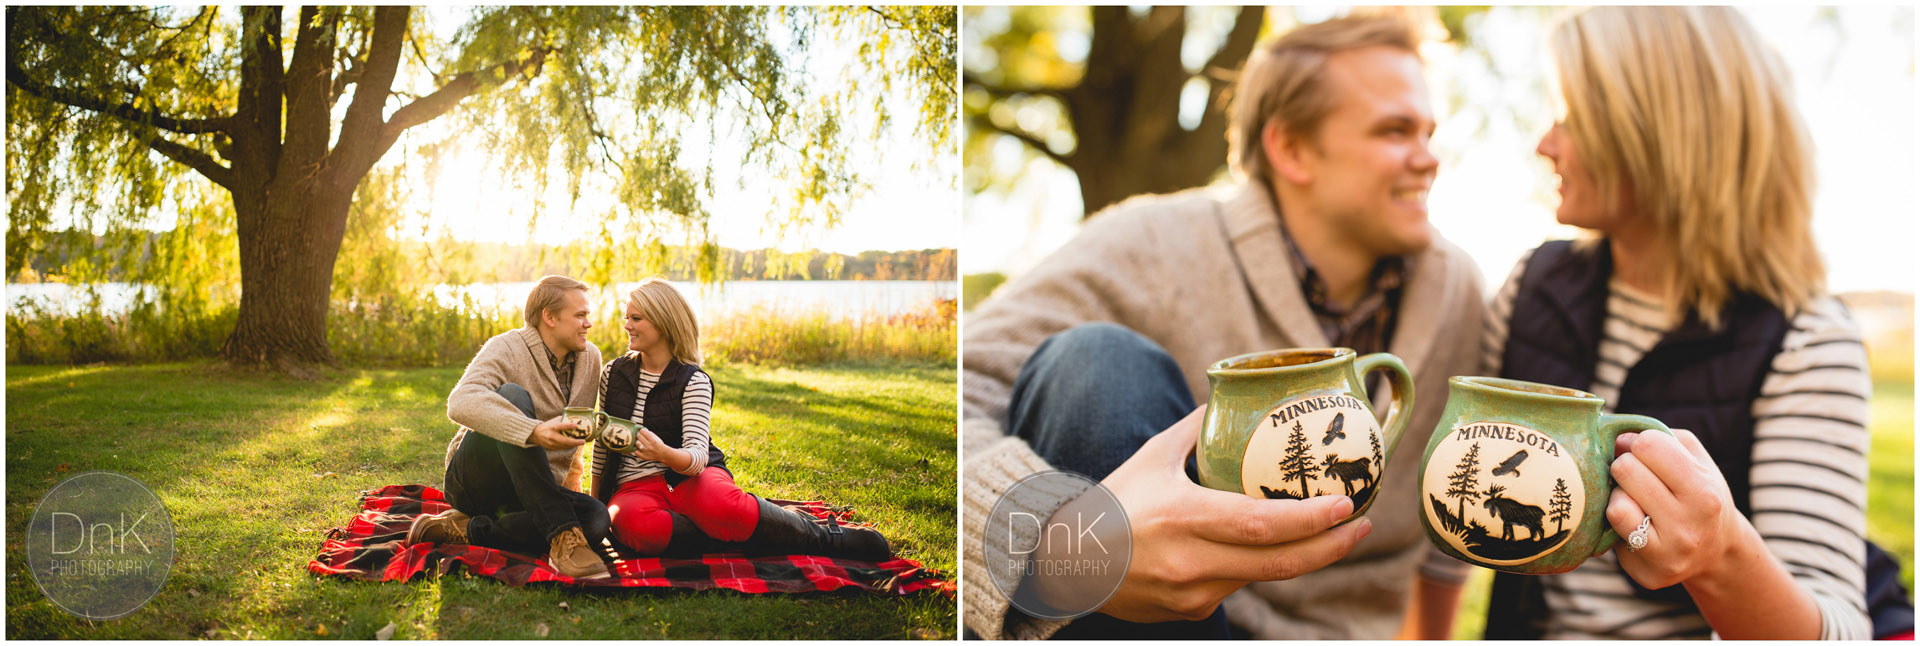 06-Fall-Engagement-Minnesota-DnK-Photography